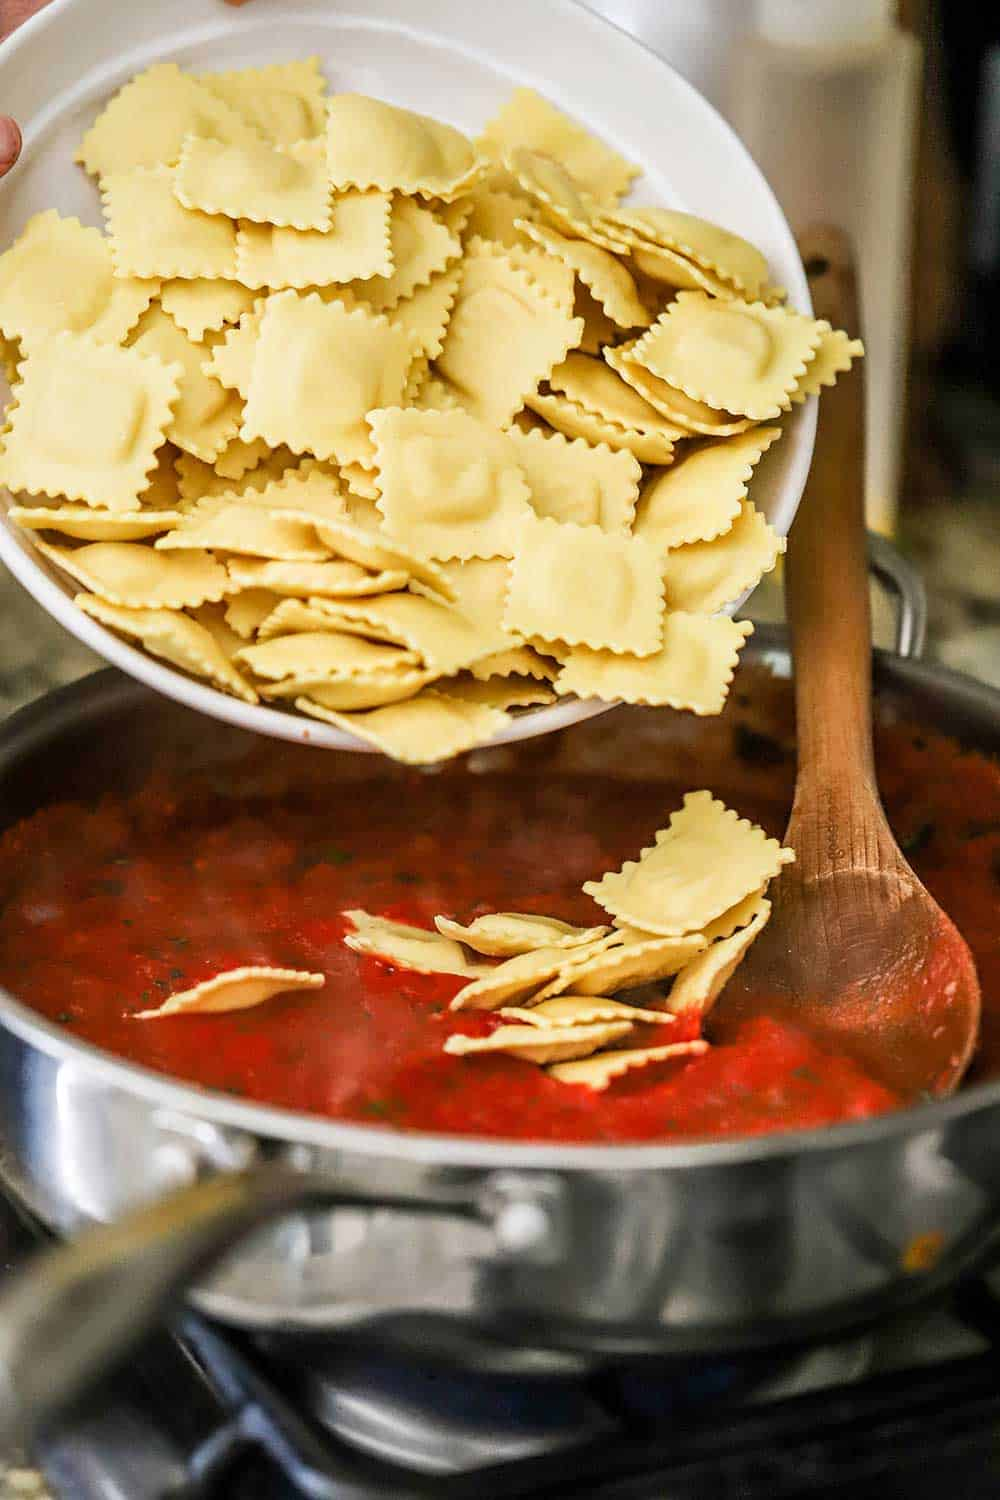 A person dumping a white bowl filled with fresh ravioli into a large skillet filled with a tomato sauce.